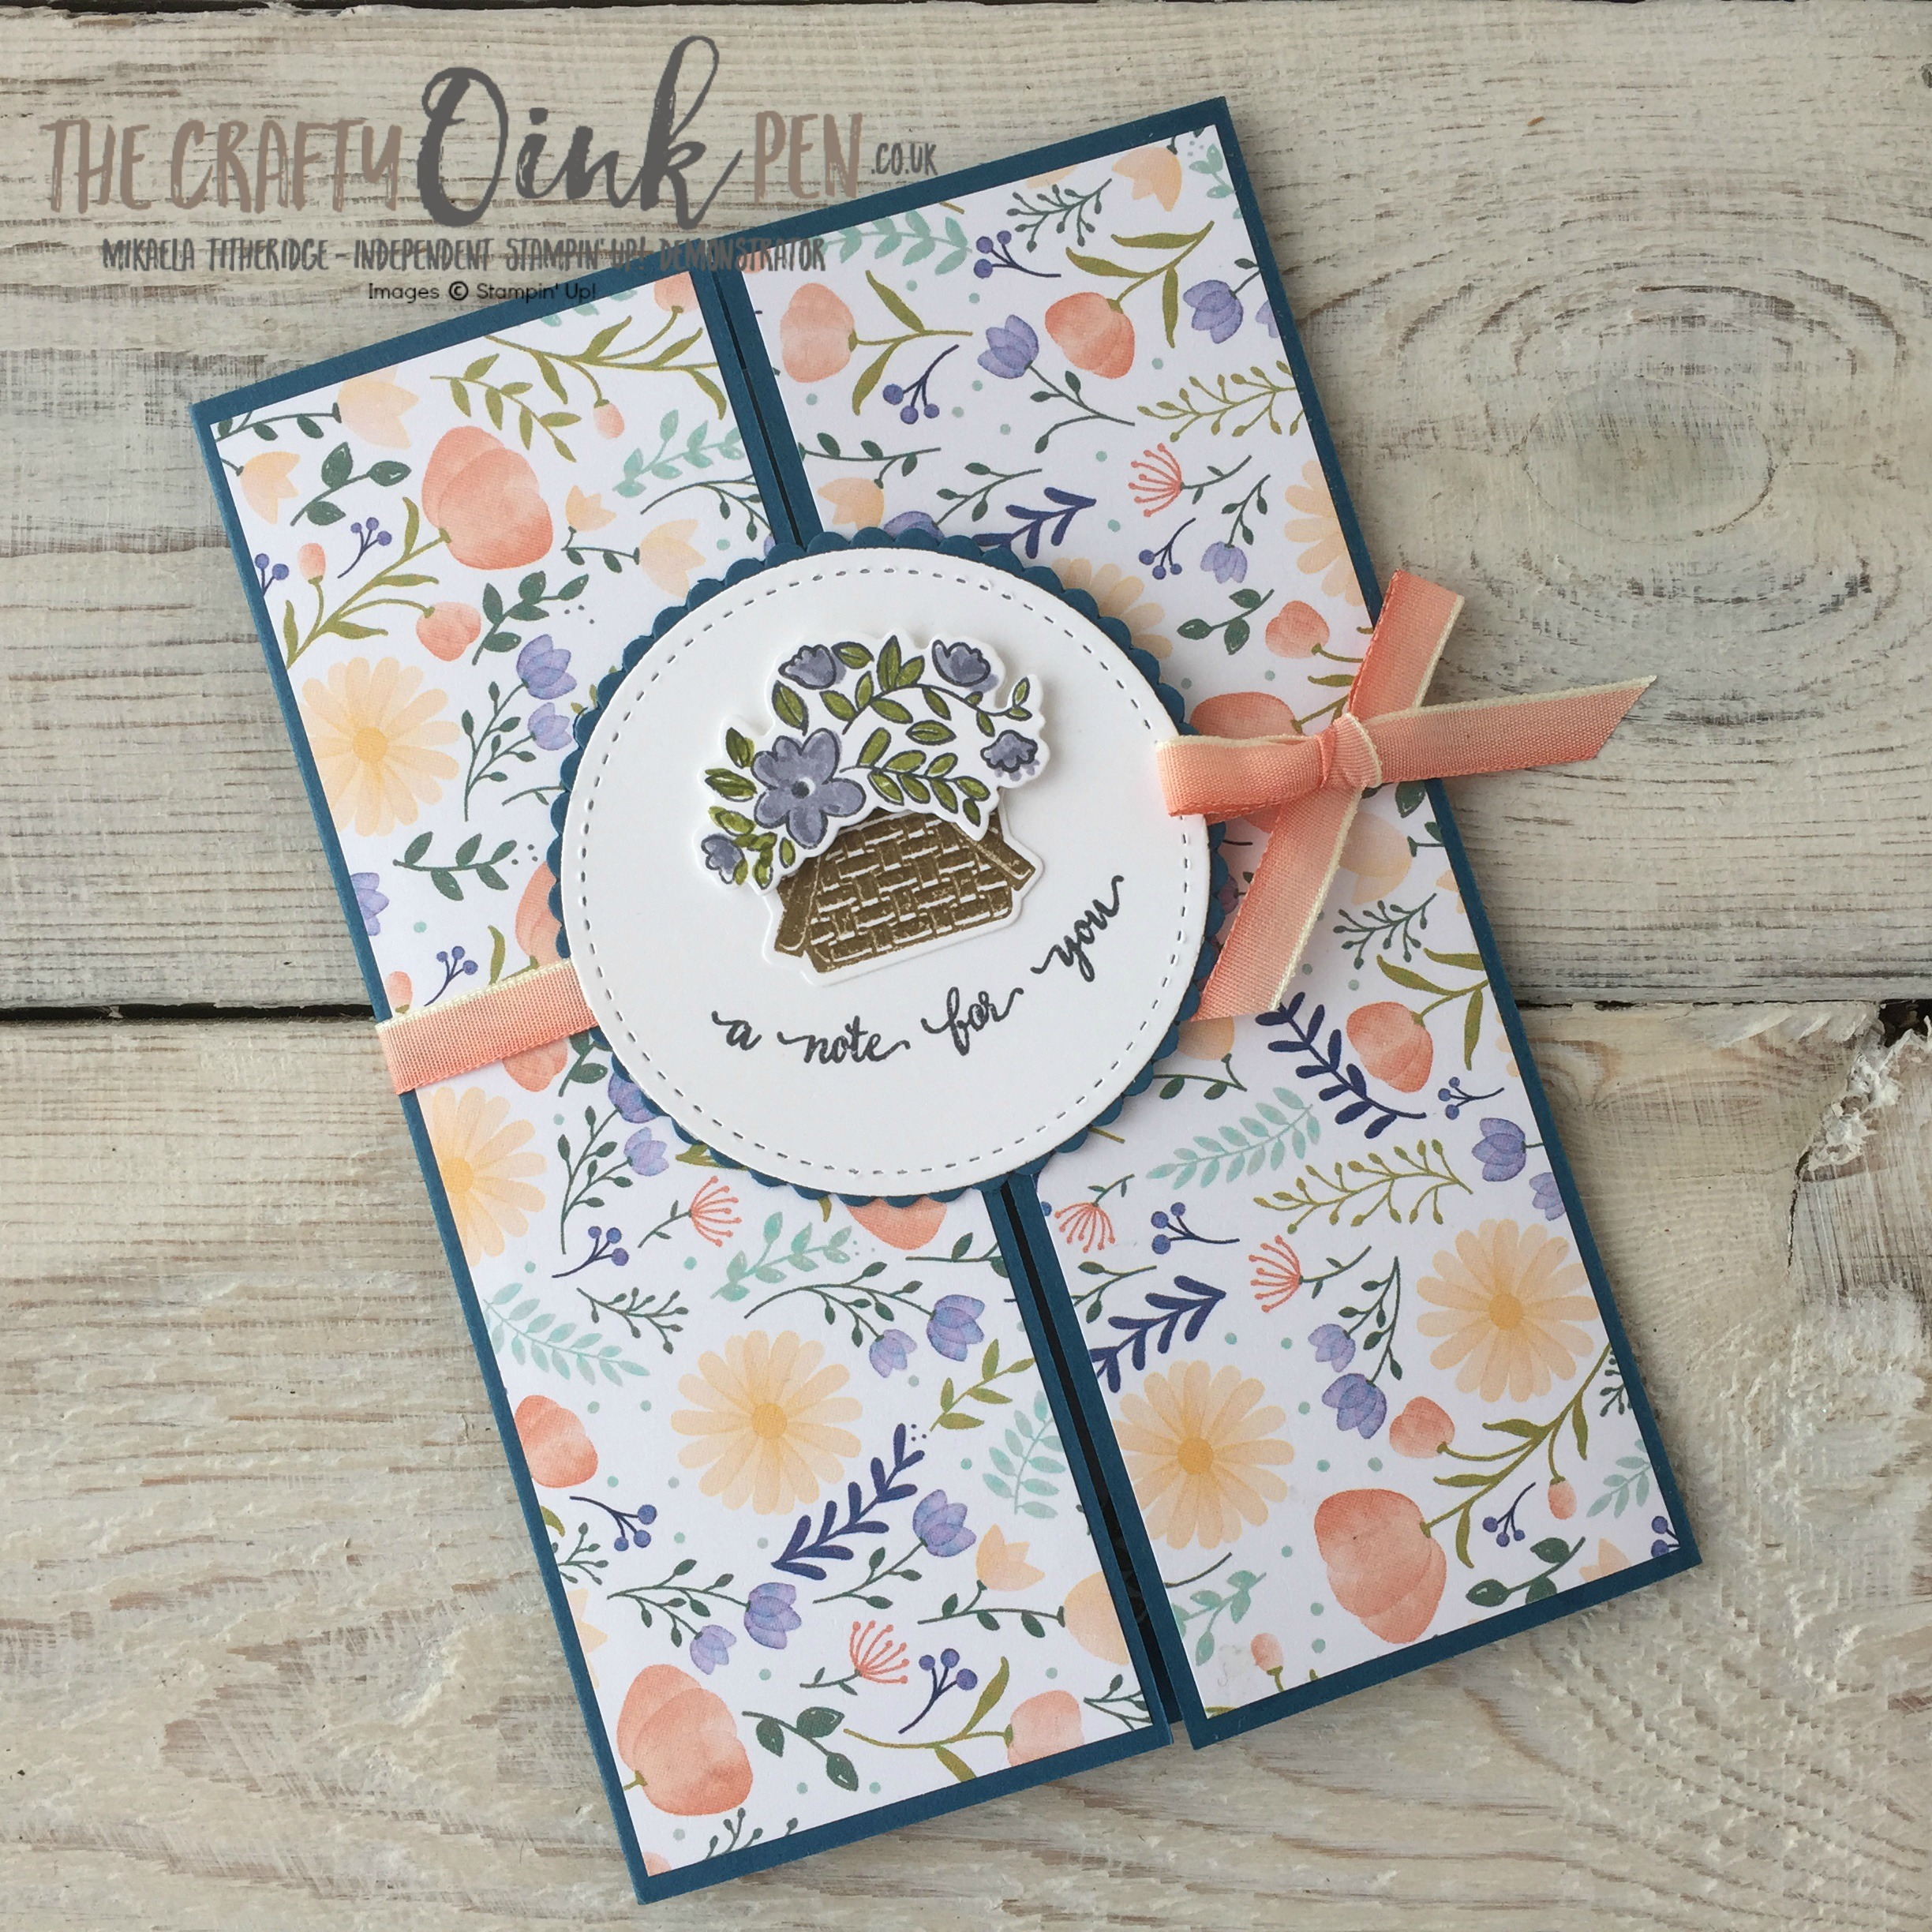 Bike Ride with Delightful Daisy by Mikaela Titheridge, Independent UK Stampin' Up! Demonstrator, The Crafty oINK Pen